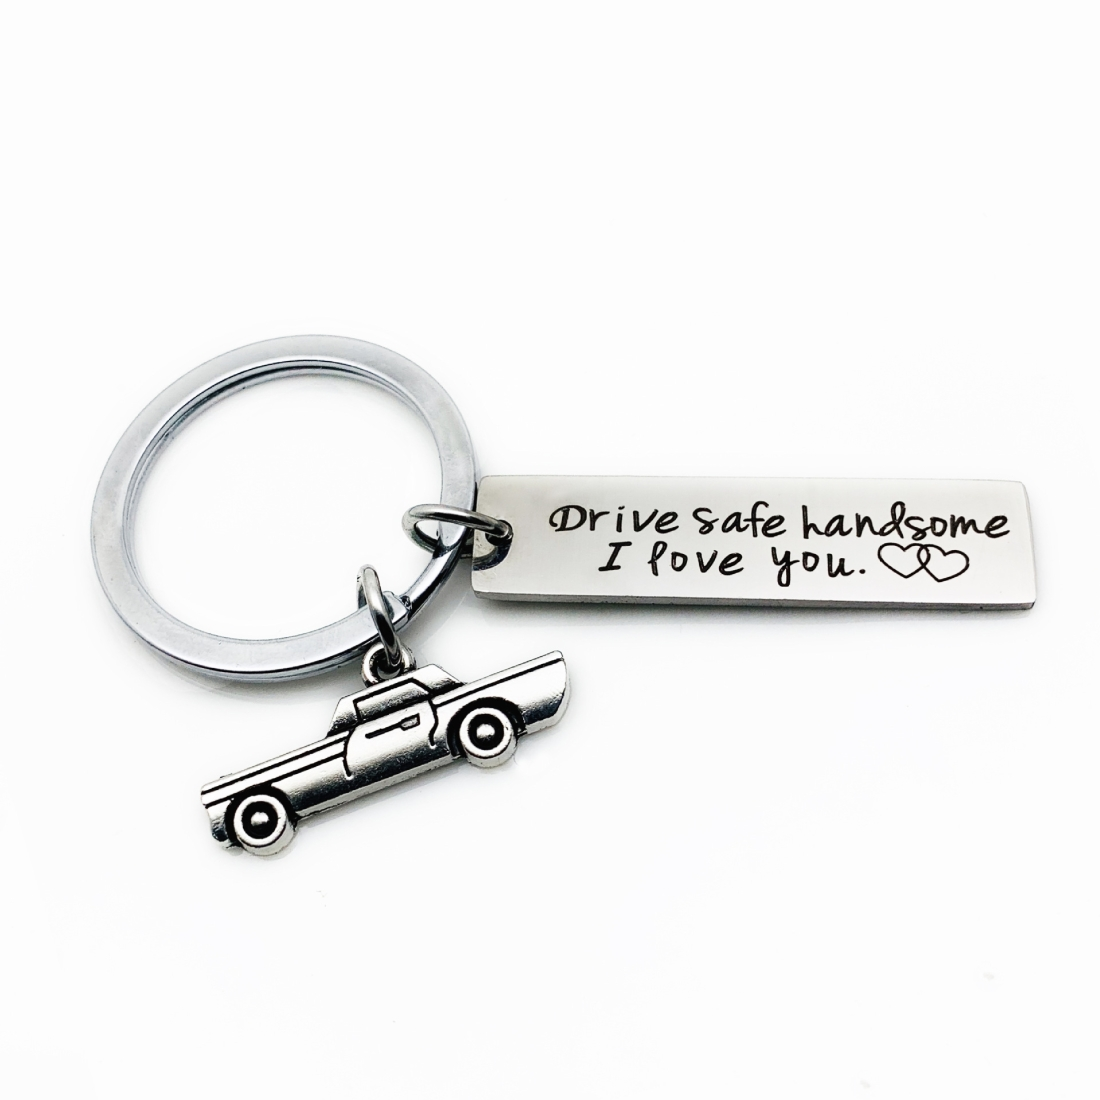 Creative Drive Safe Handsome Words Stainless Steel Keychain Key Rings (Car)